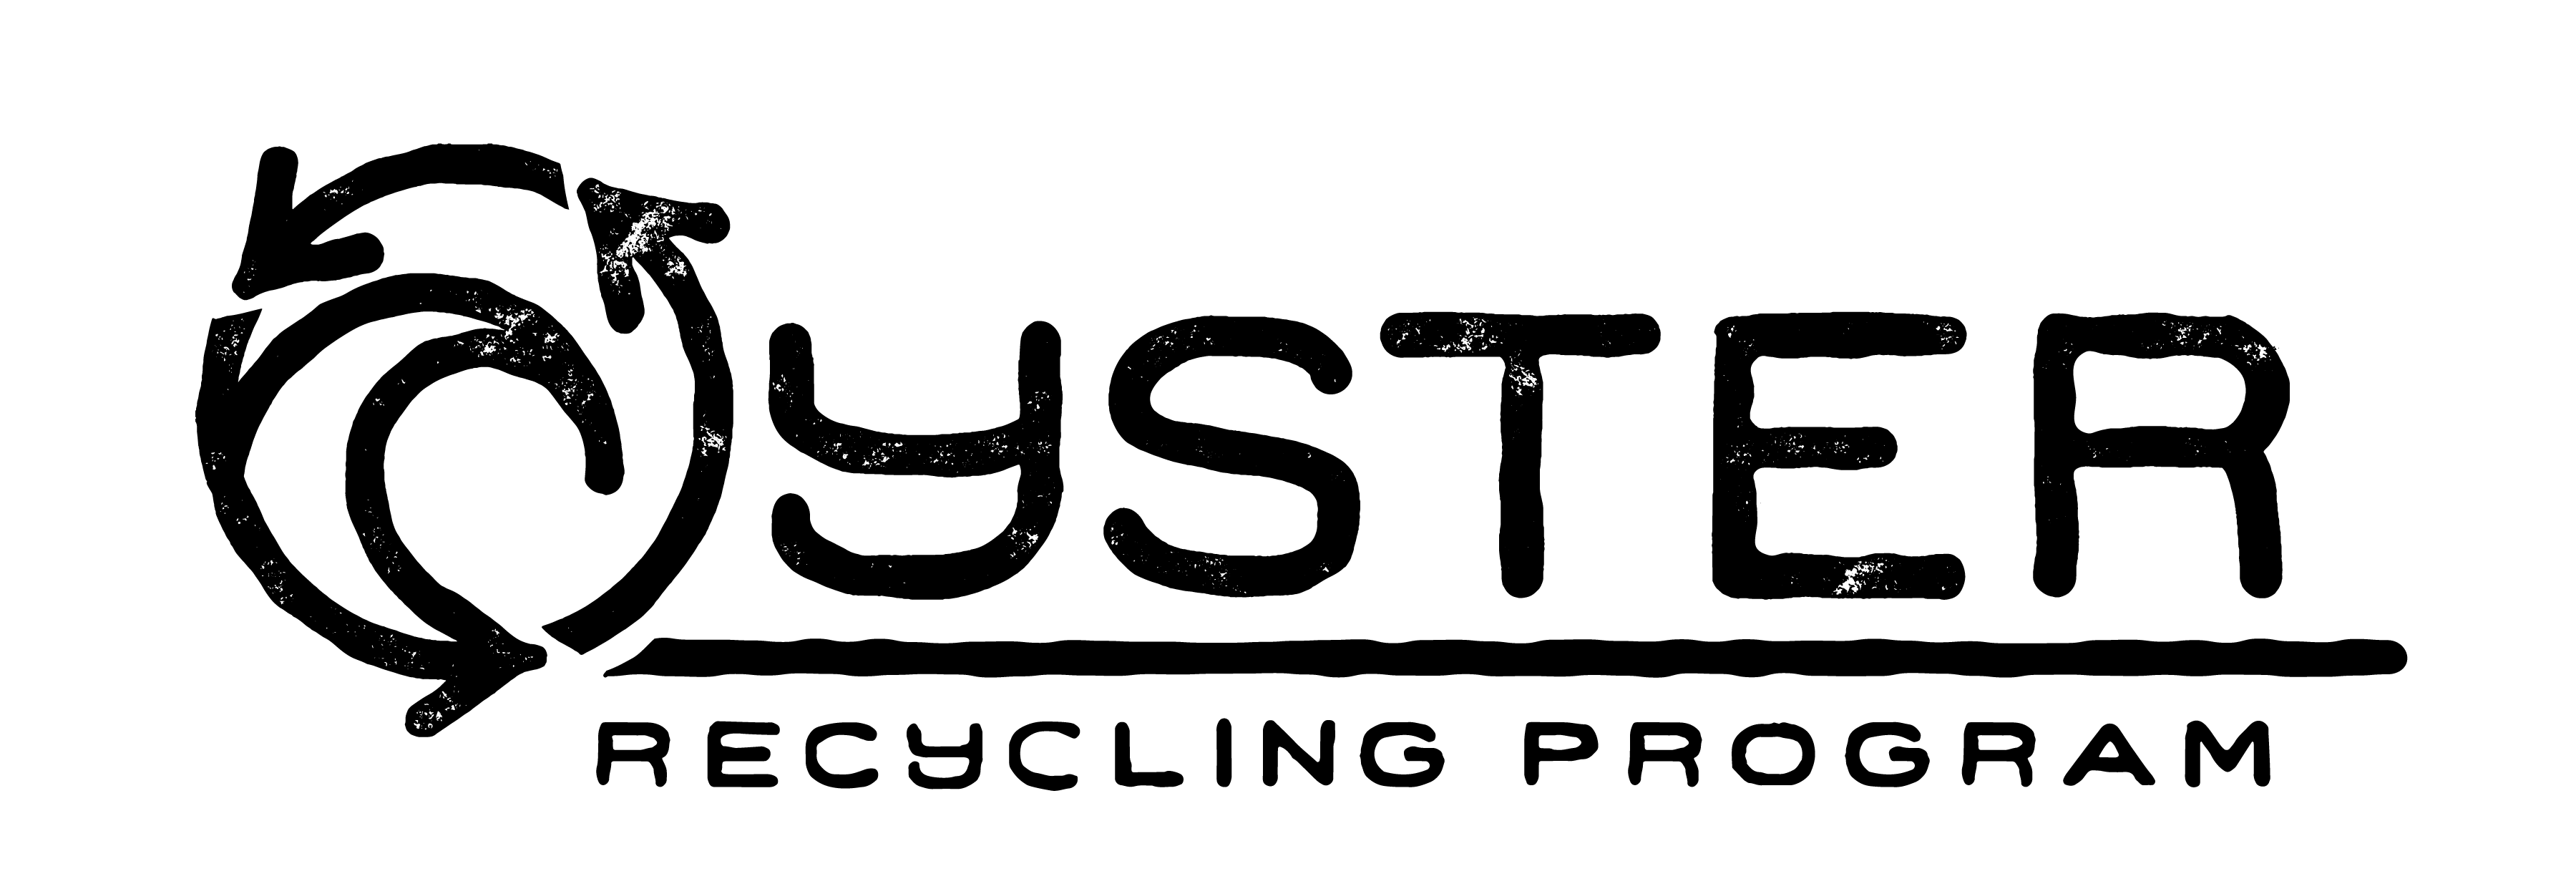 Oyster Recycling Program